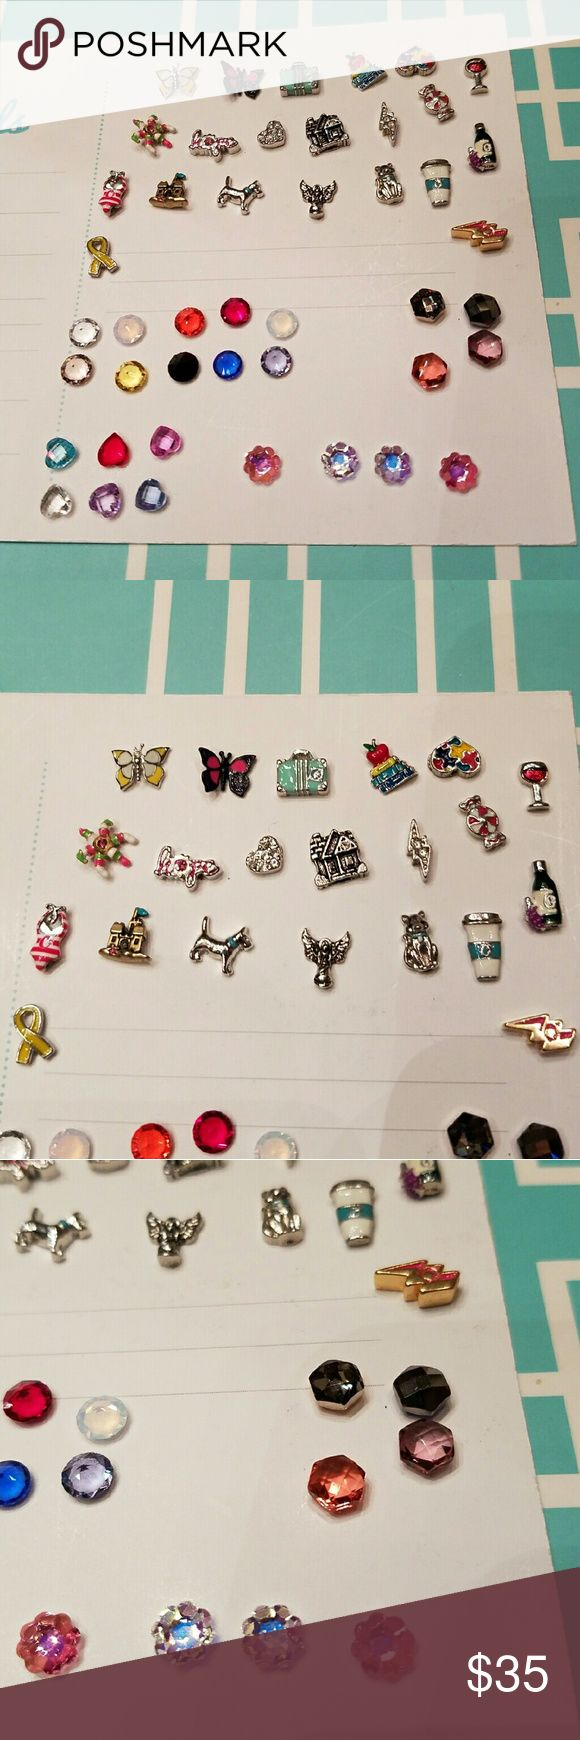 New Origami Owl charms New origami owl charms, pick any 10 for $25 or $3.00 each origami owl Jewelry